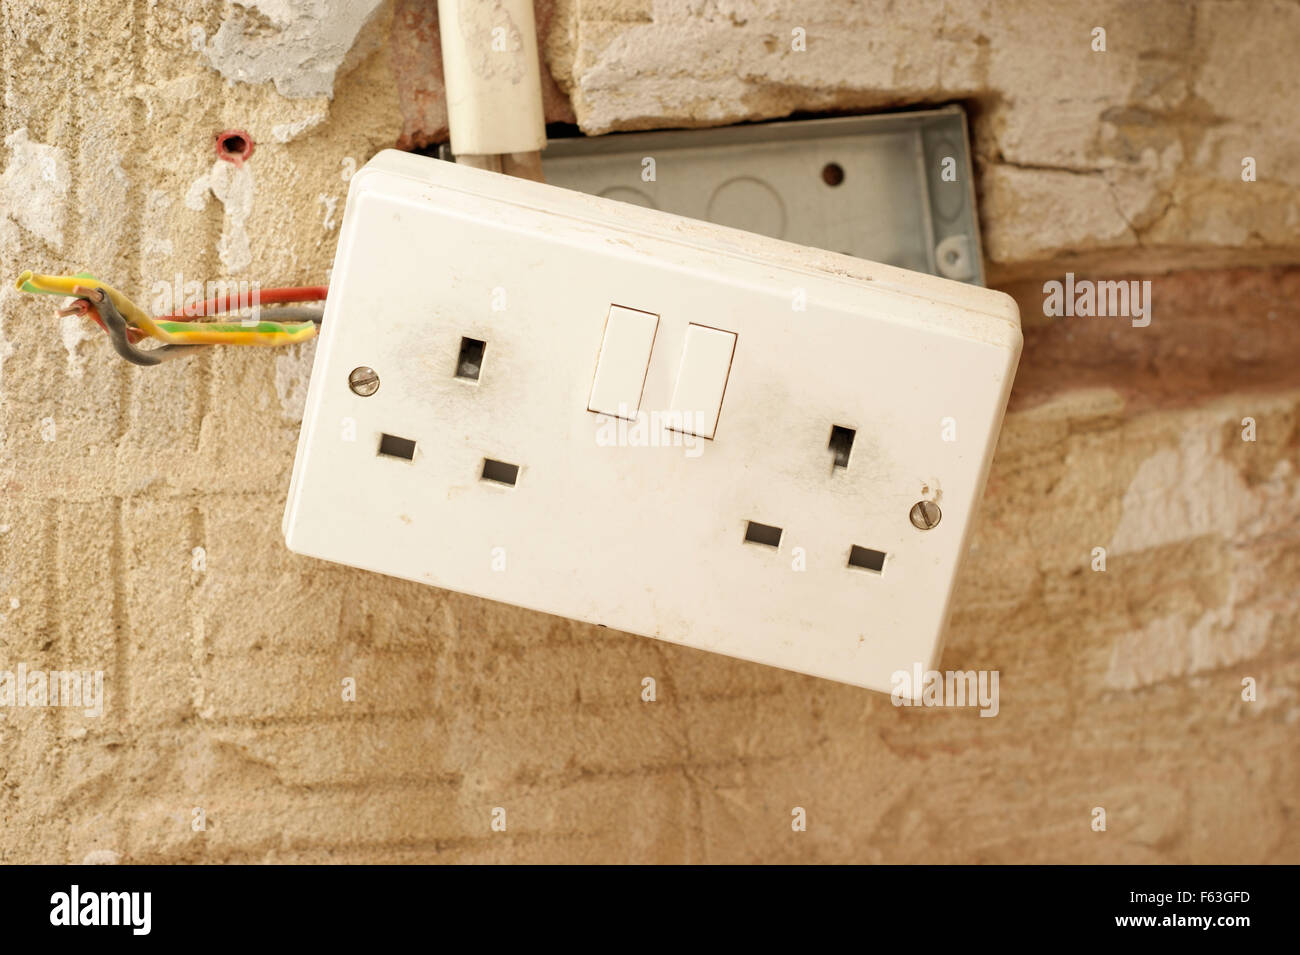 electric plug sockets with exposed wiring in a rented social housingelectric plug sockets with exposed wiring in a rented social housing property house that needs attending to